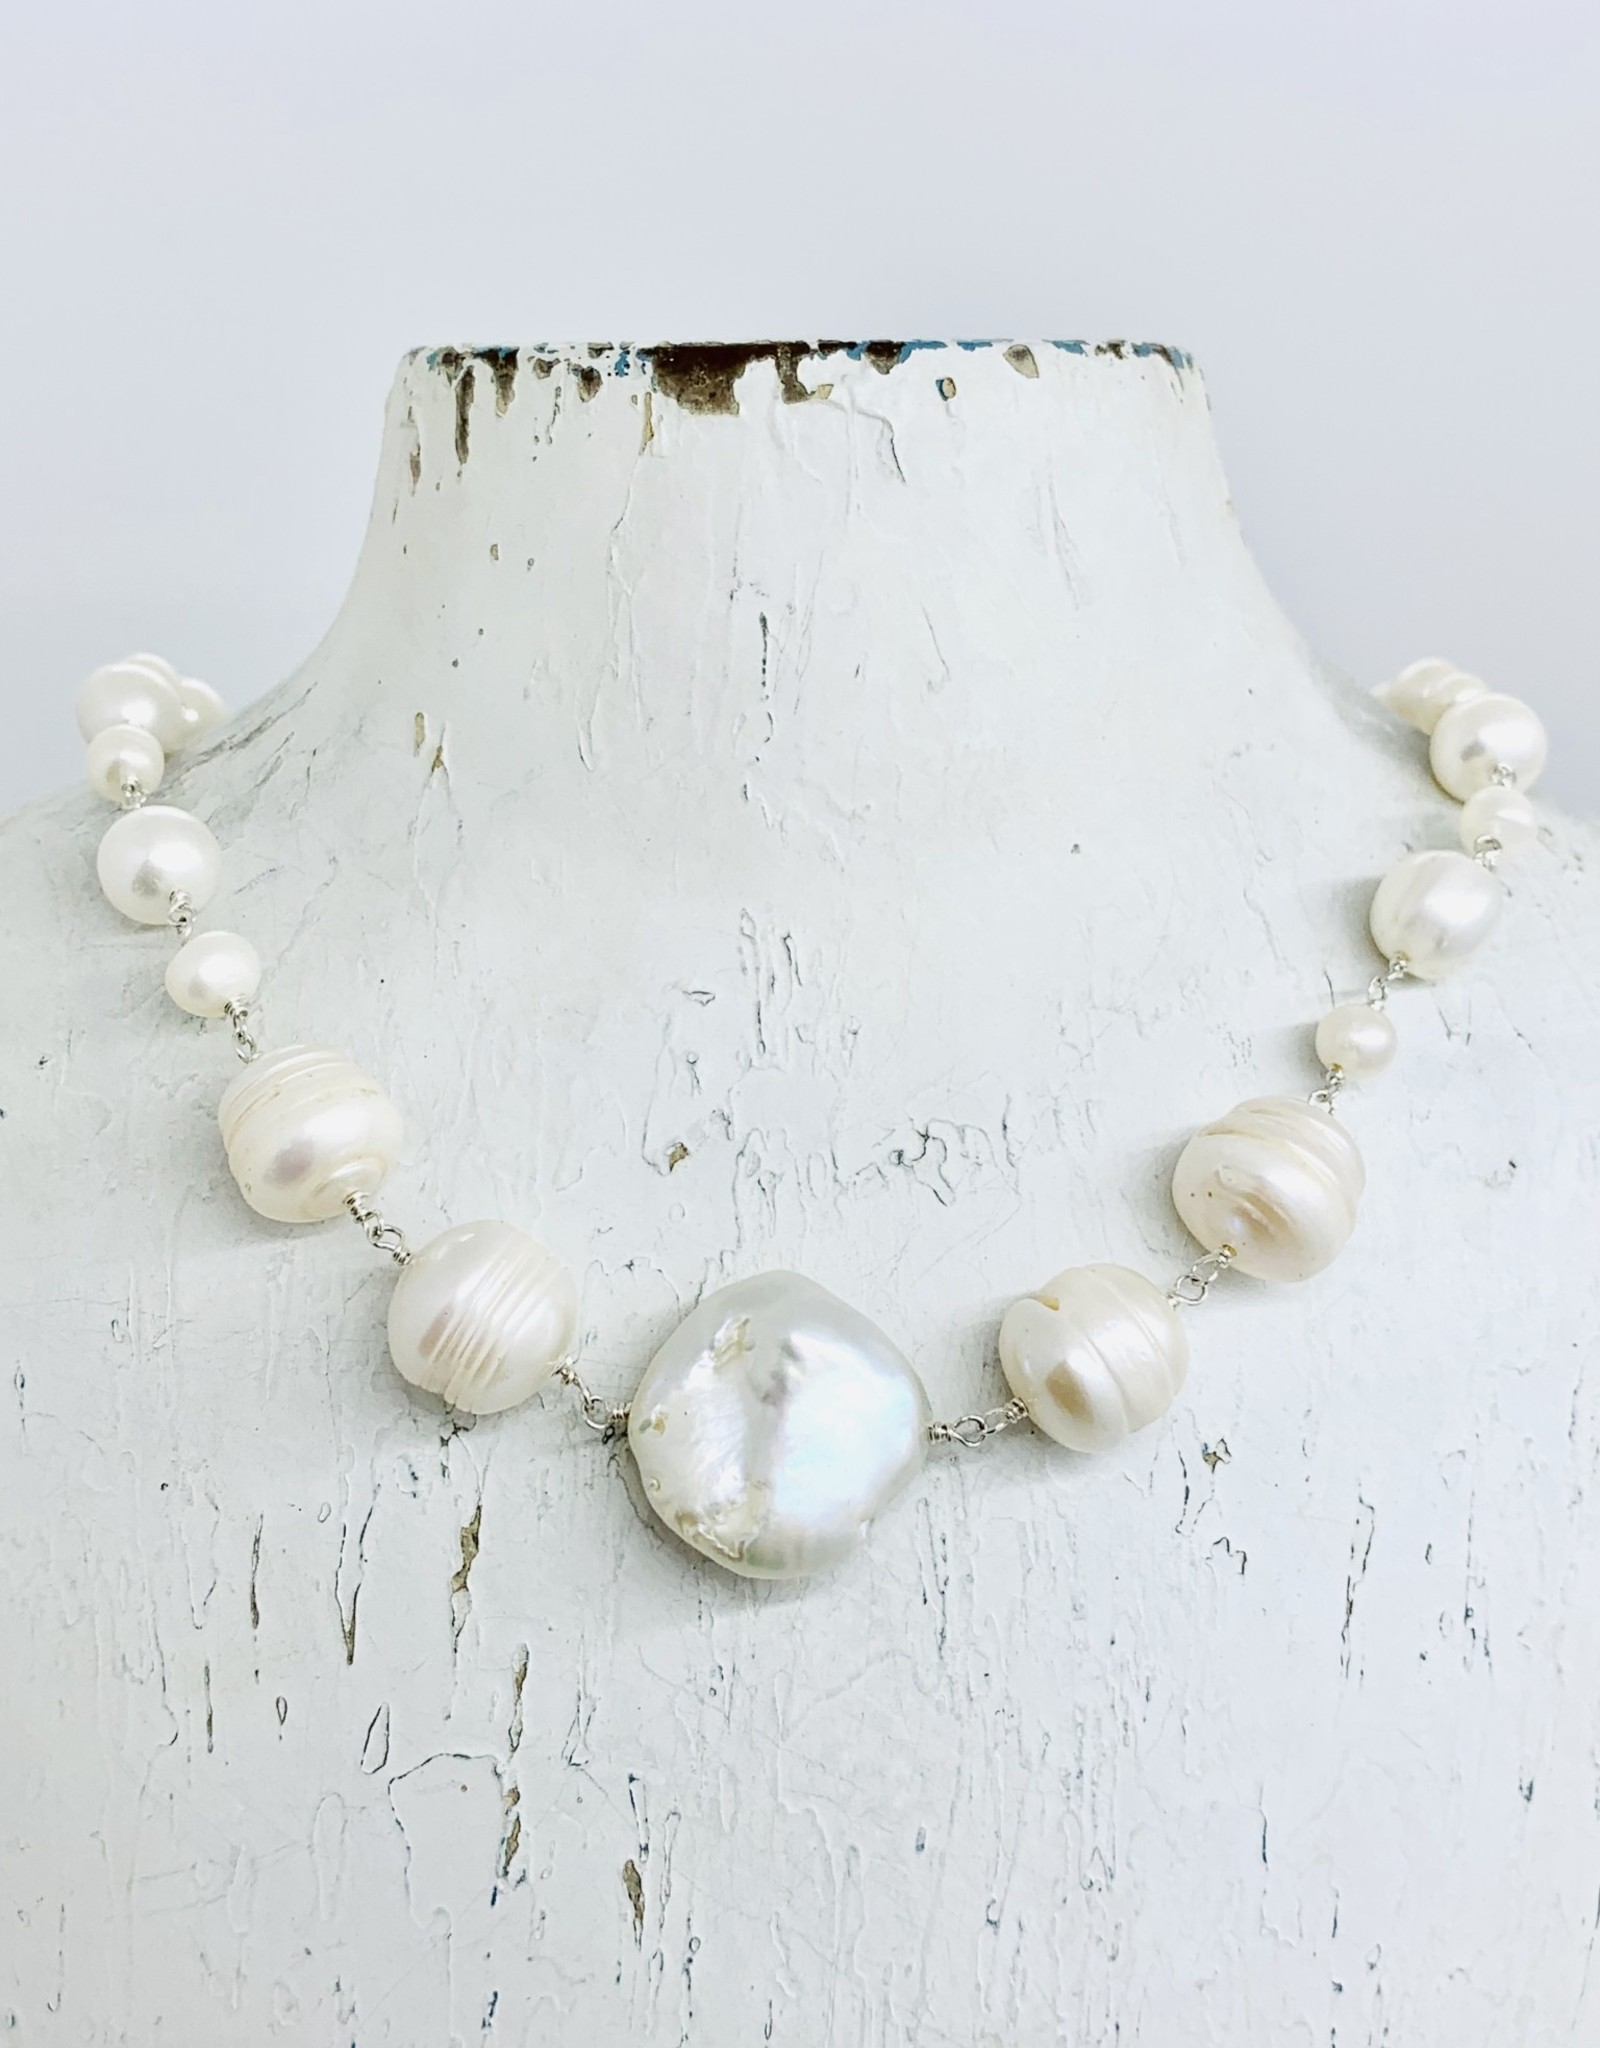 Handmade Necklace with graduated connected white pearls, 1 baroque in center